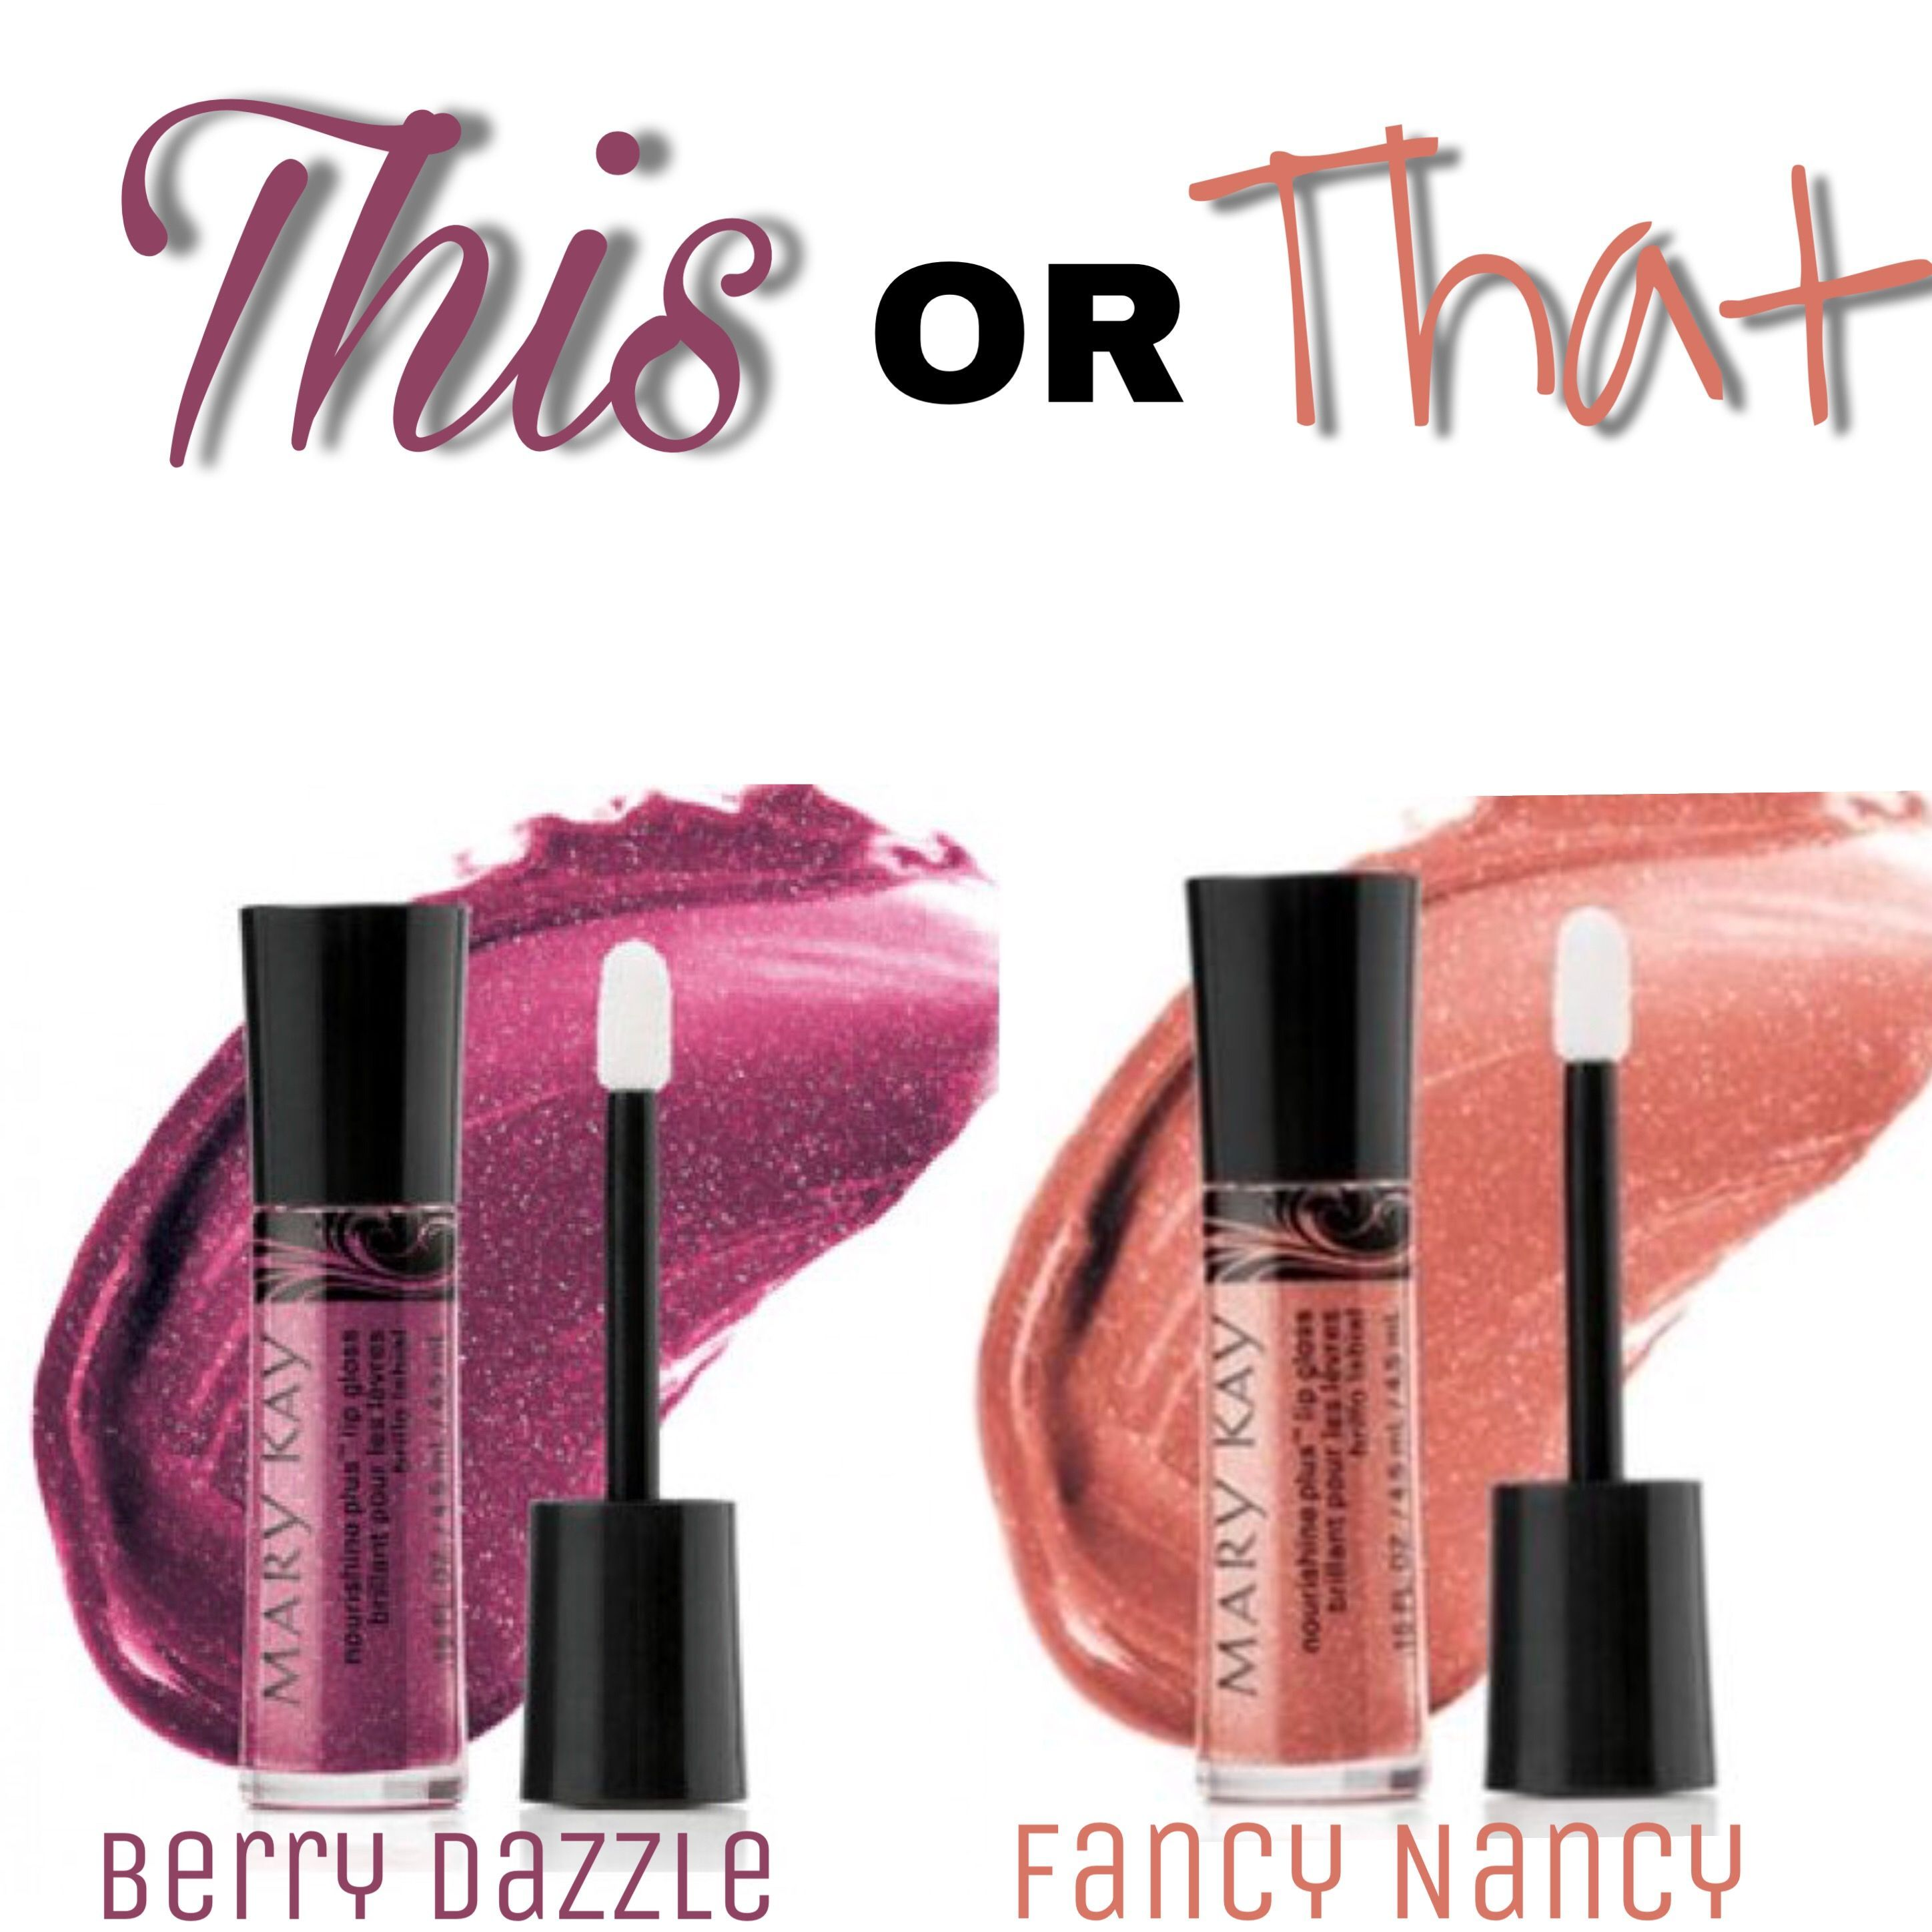 These lip gloss colors will bring many smiles to your face